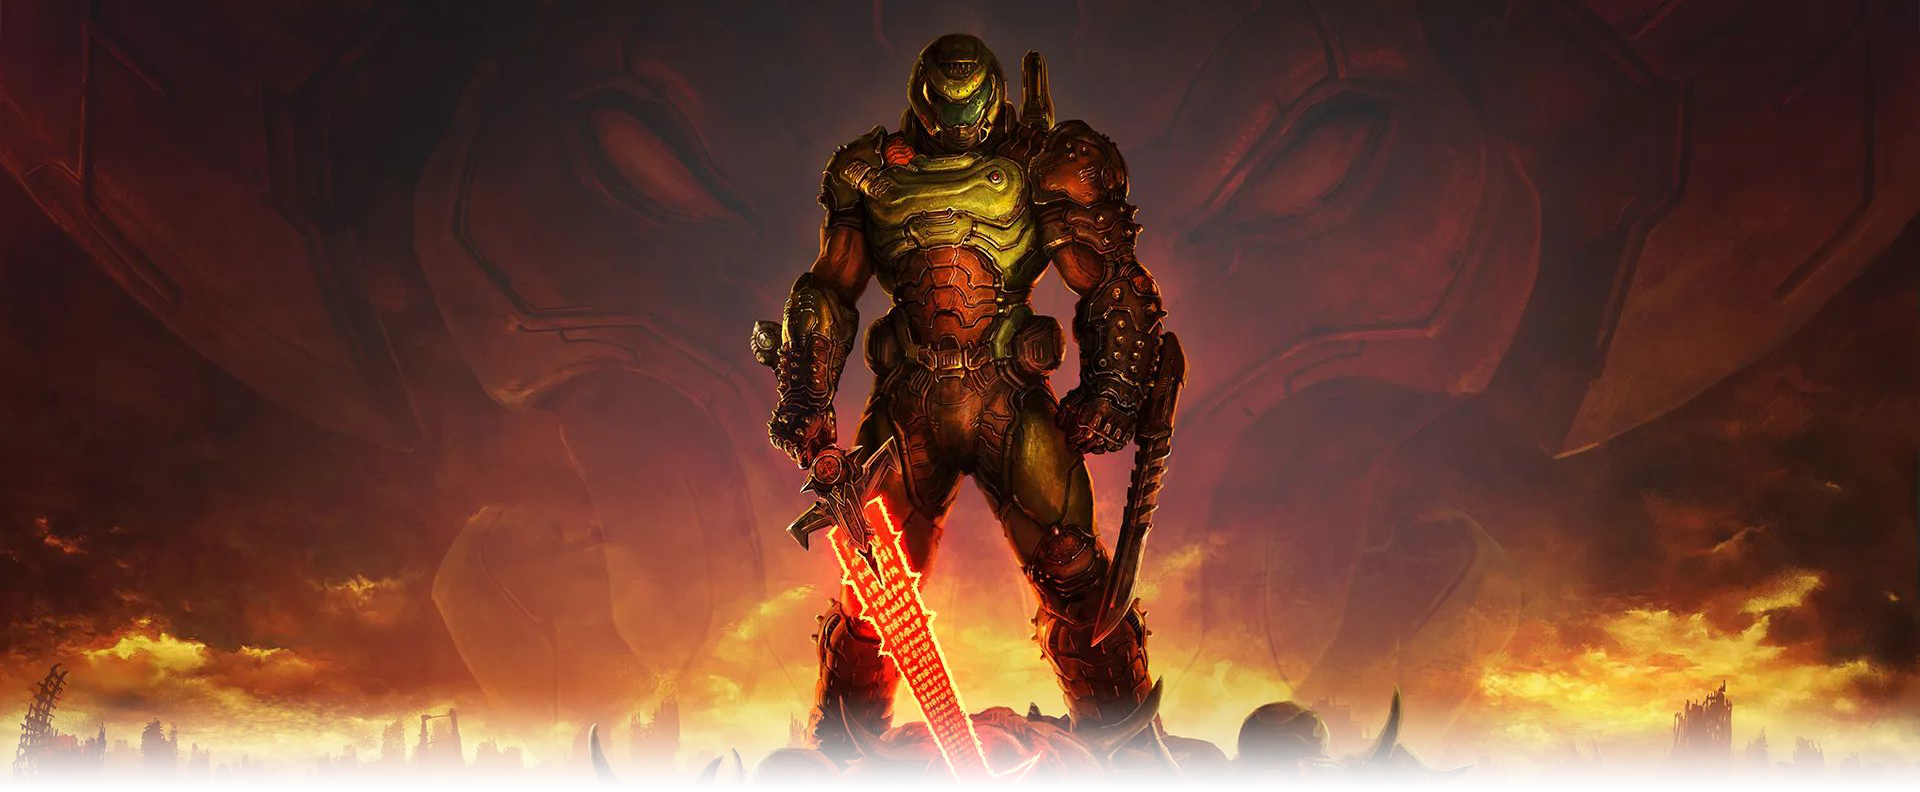 CI_NSwitch_DoomEternal_HeroBanner_Transparent.png